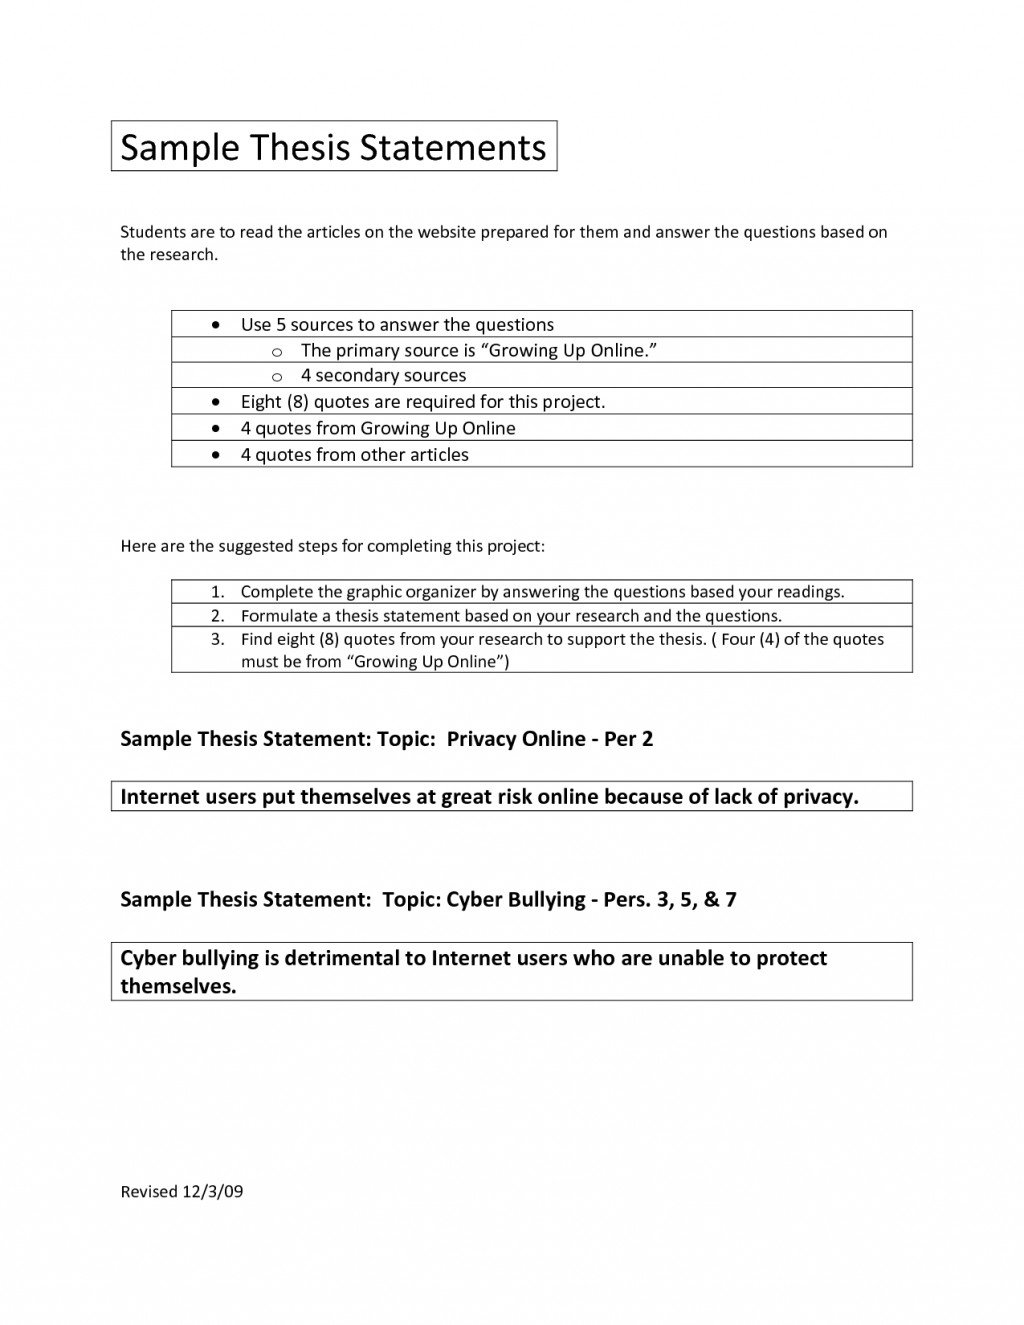 004 Buying Term Paper Online Papers Amazing Large